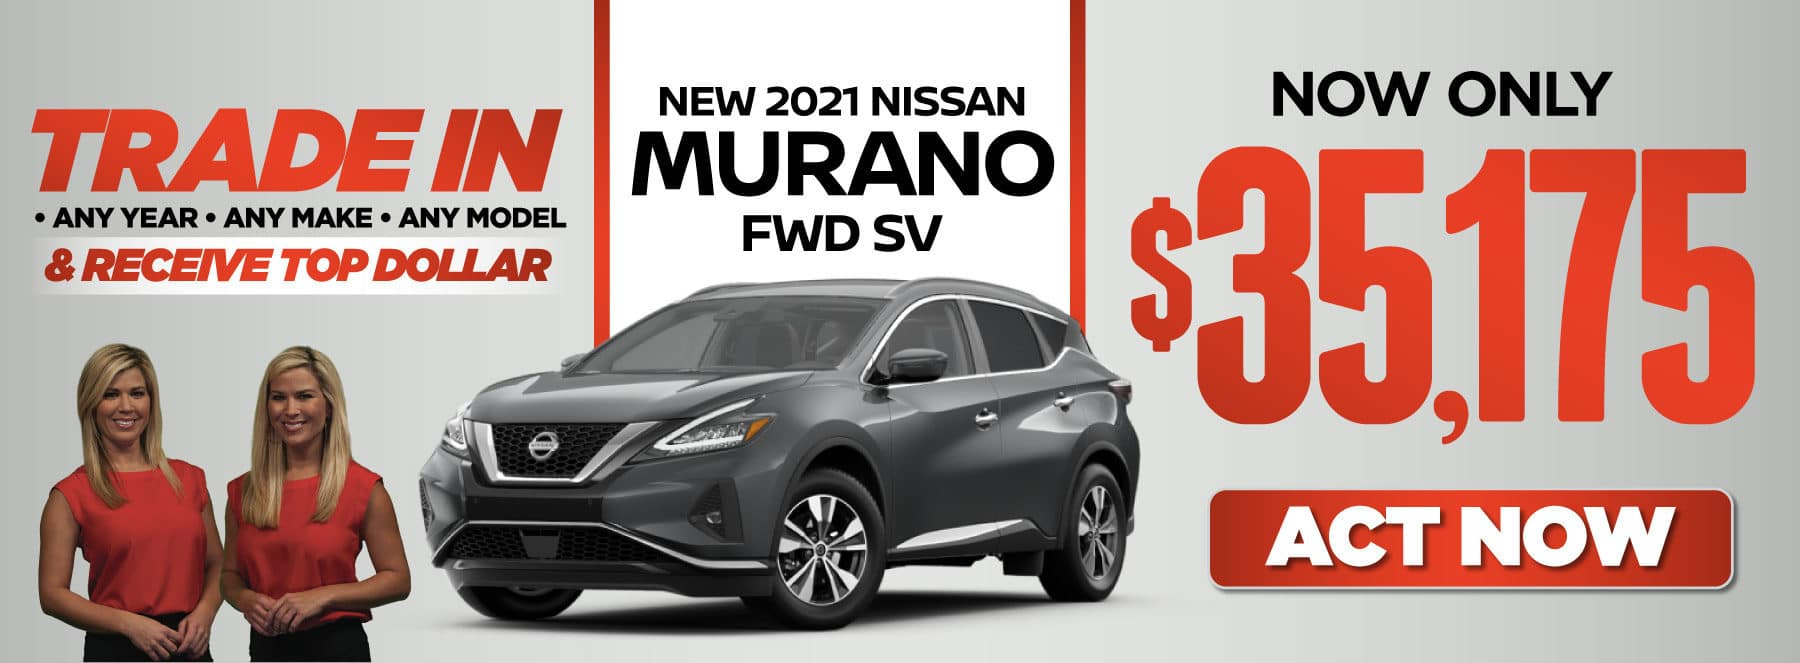 New 2021 Murano FWD SV- Now Only A$35,175 — ACT NOW